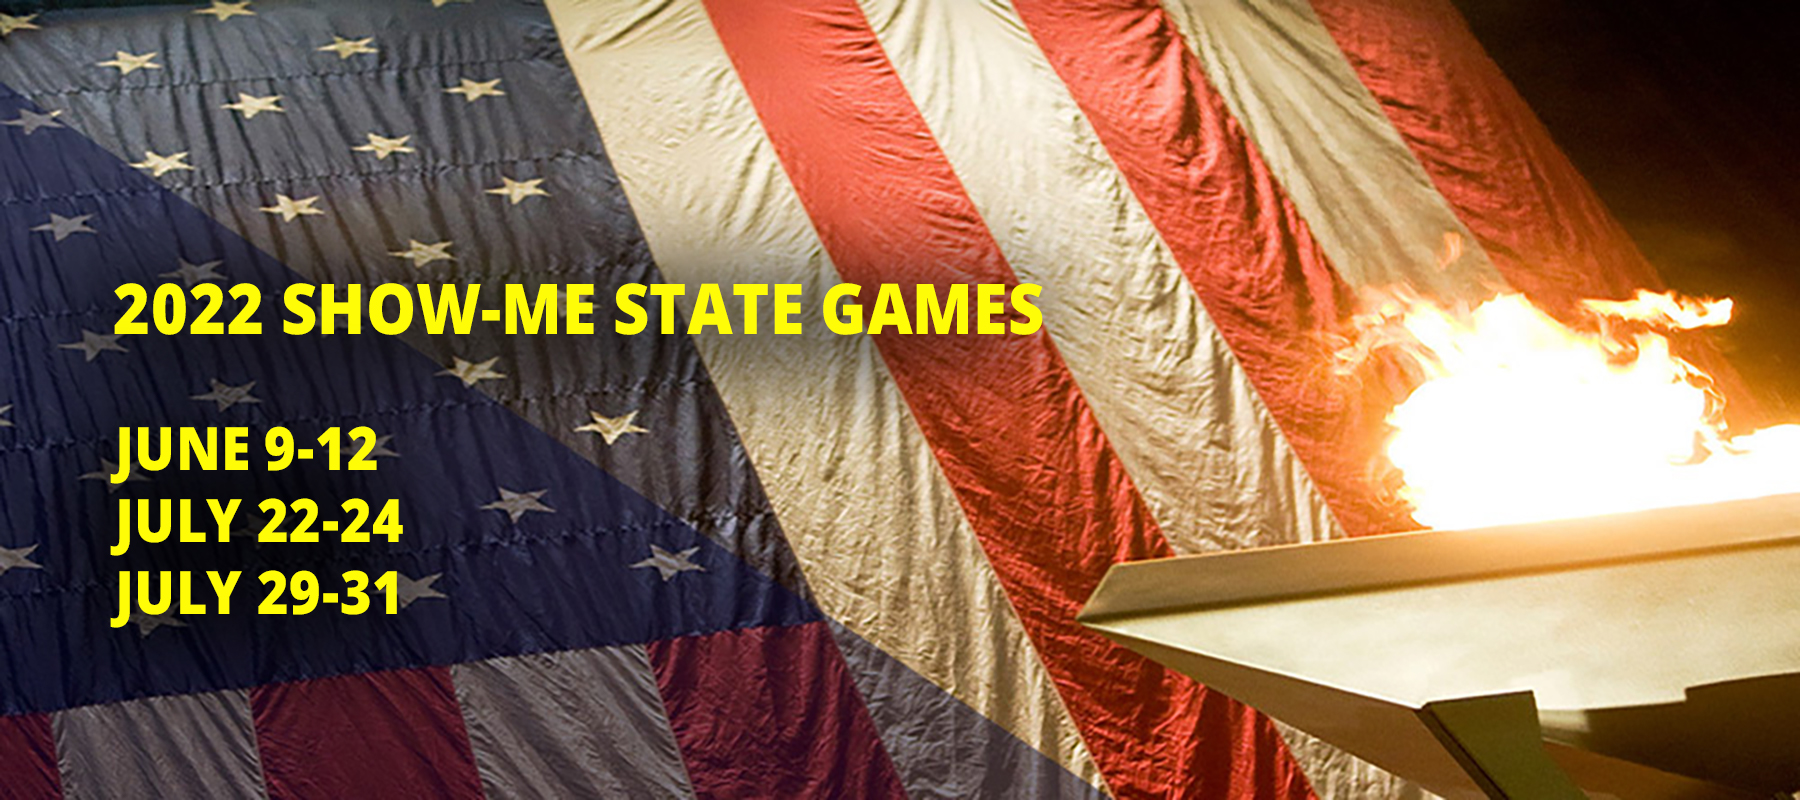 2022 Show-Me State Games